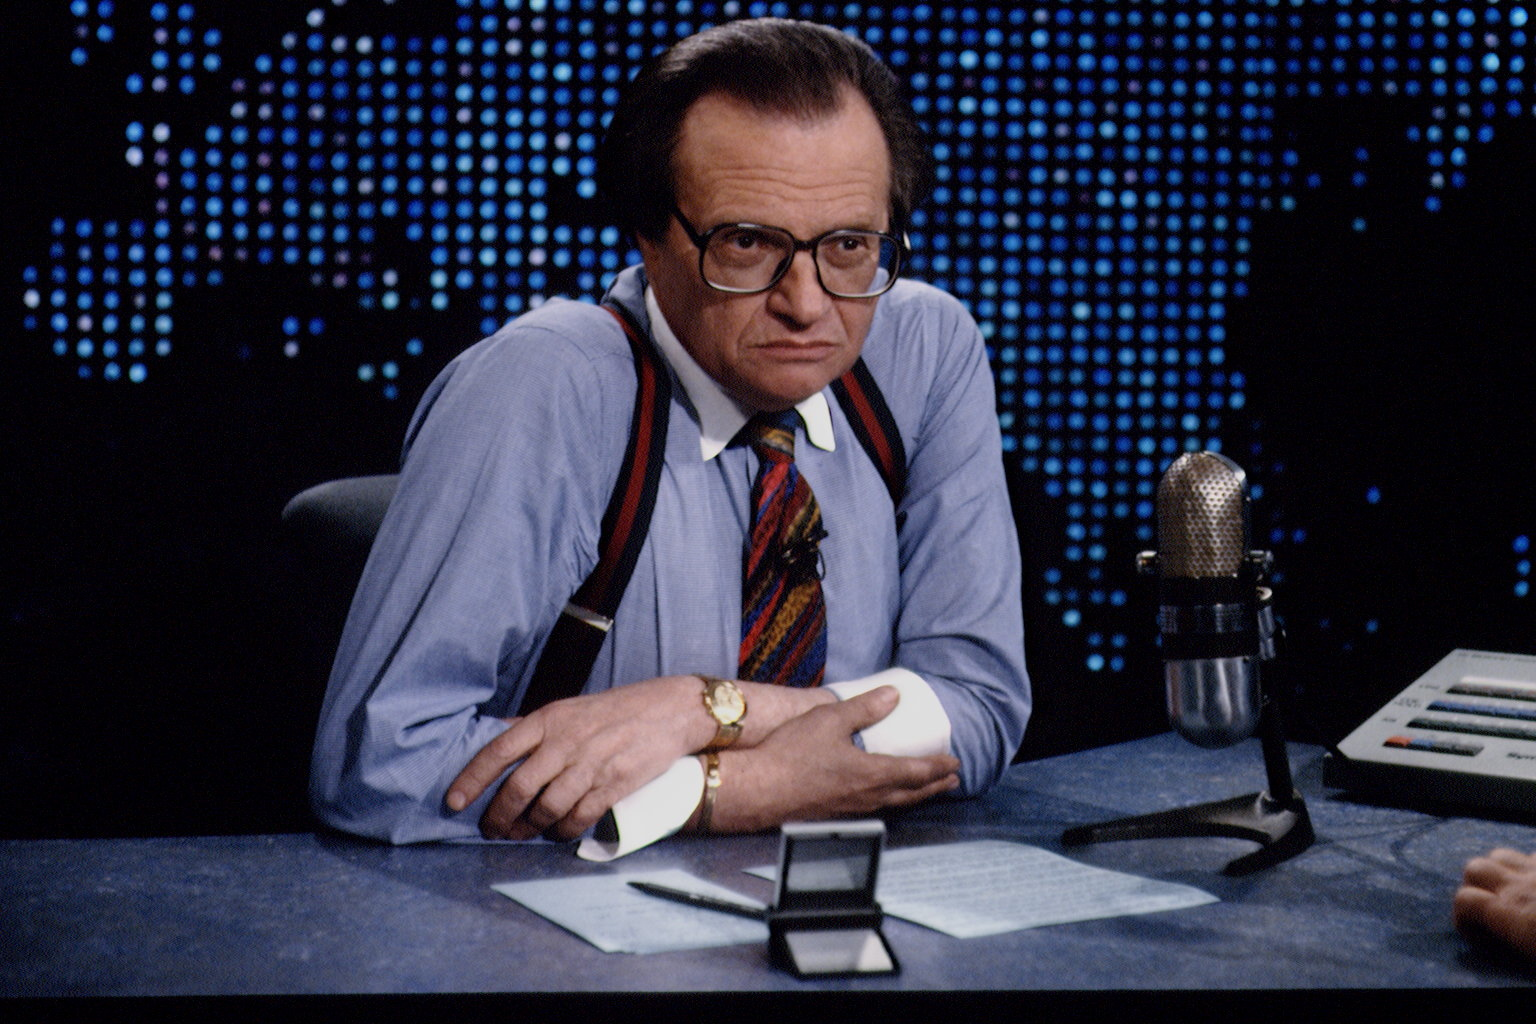 Larry King, legendary Jewish TV interviewer, dies at 87